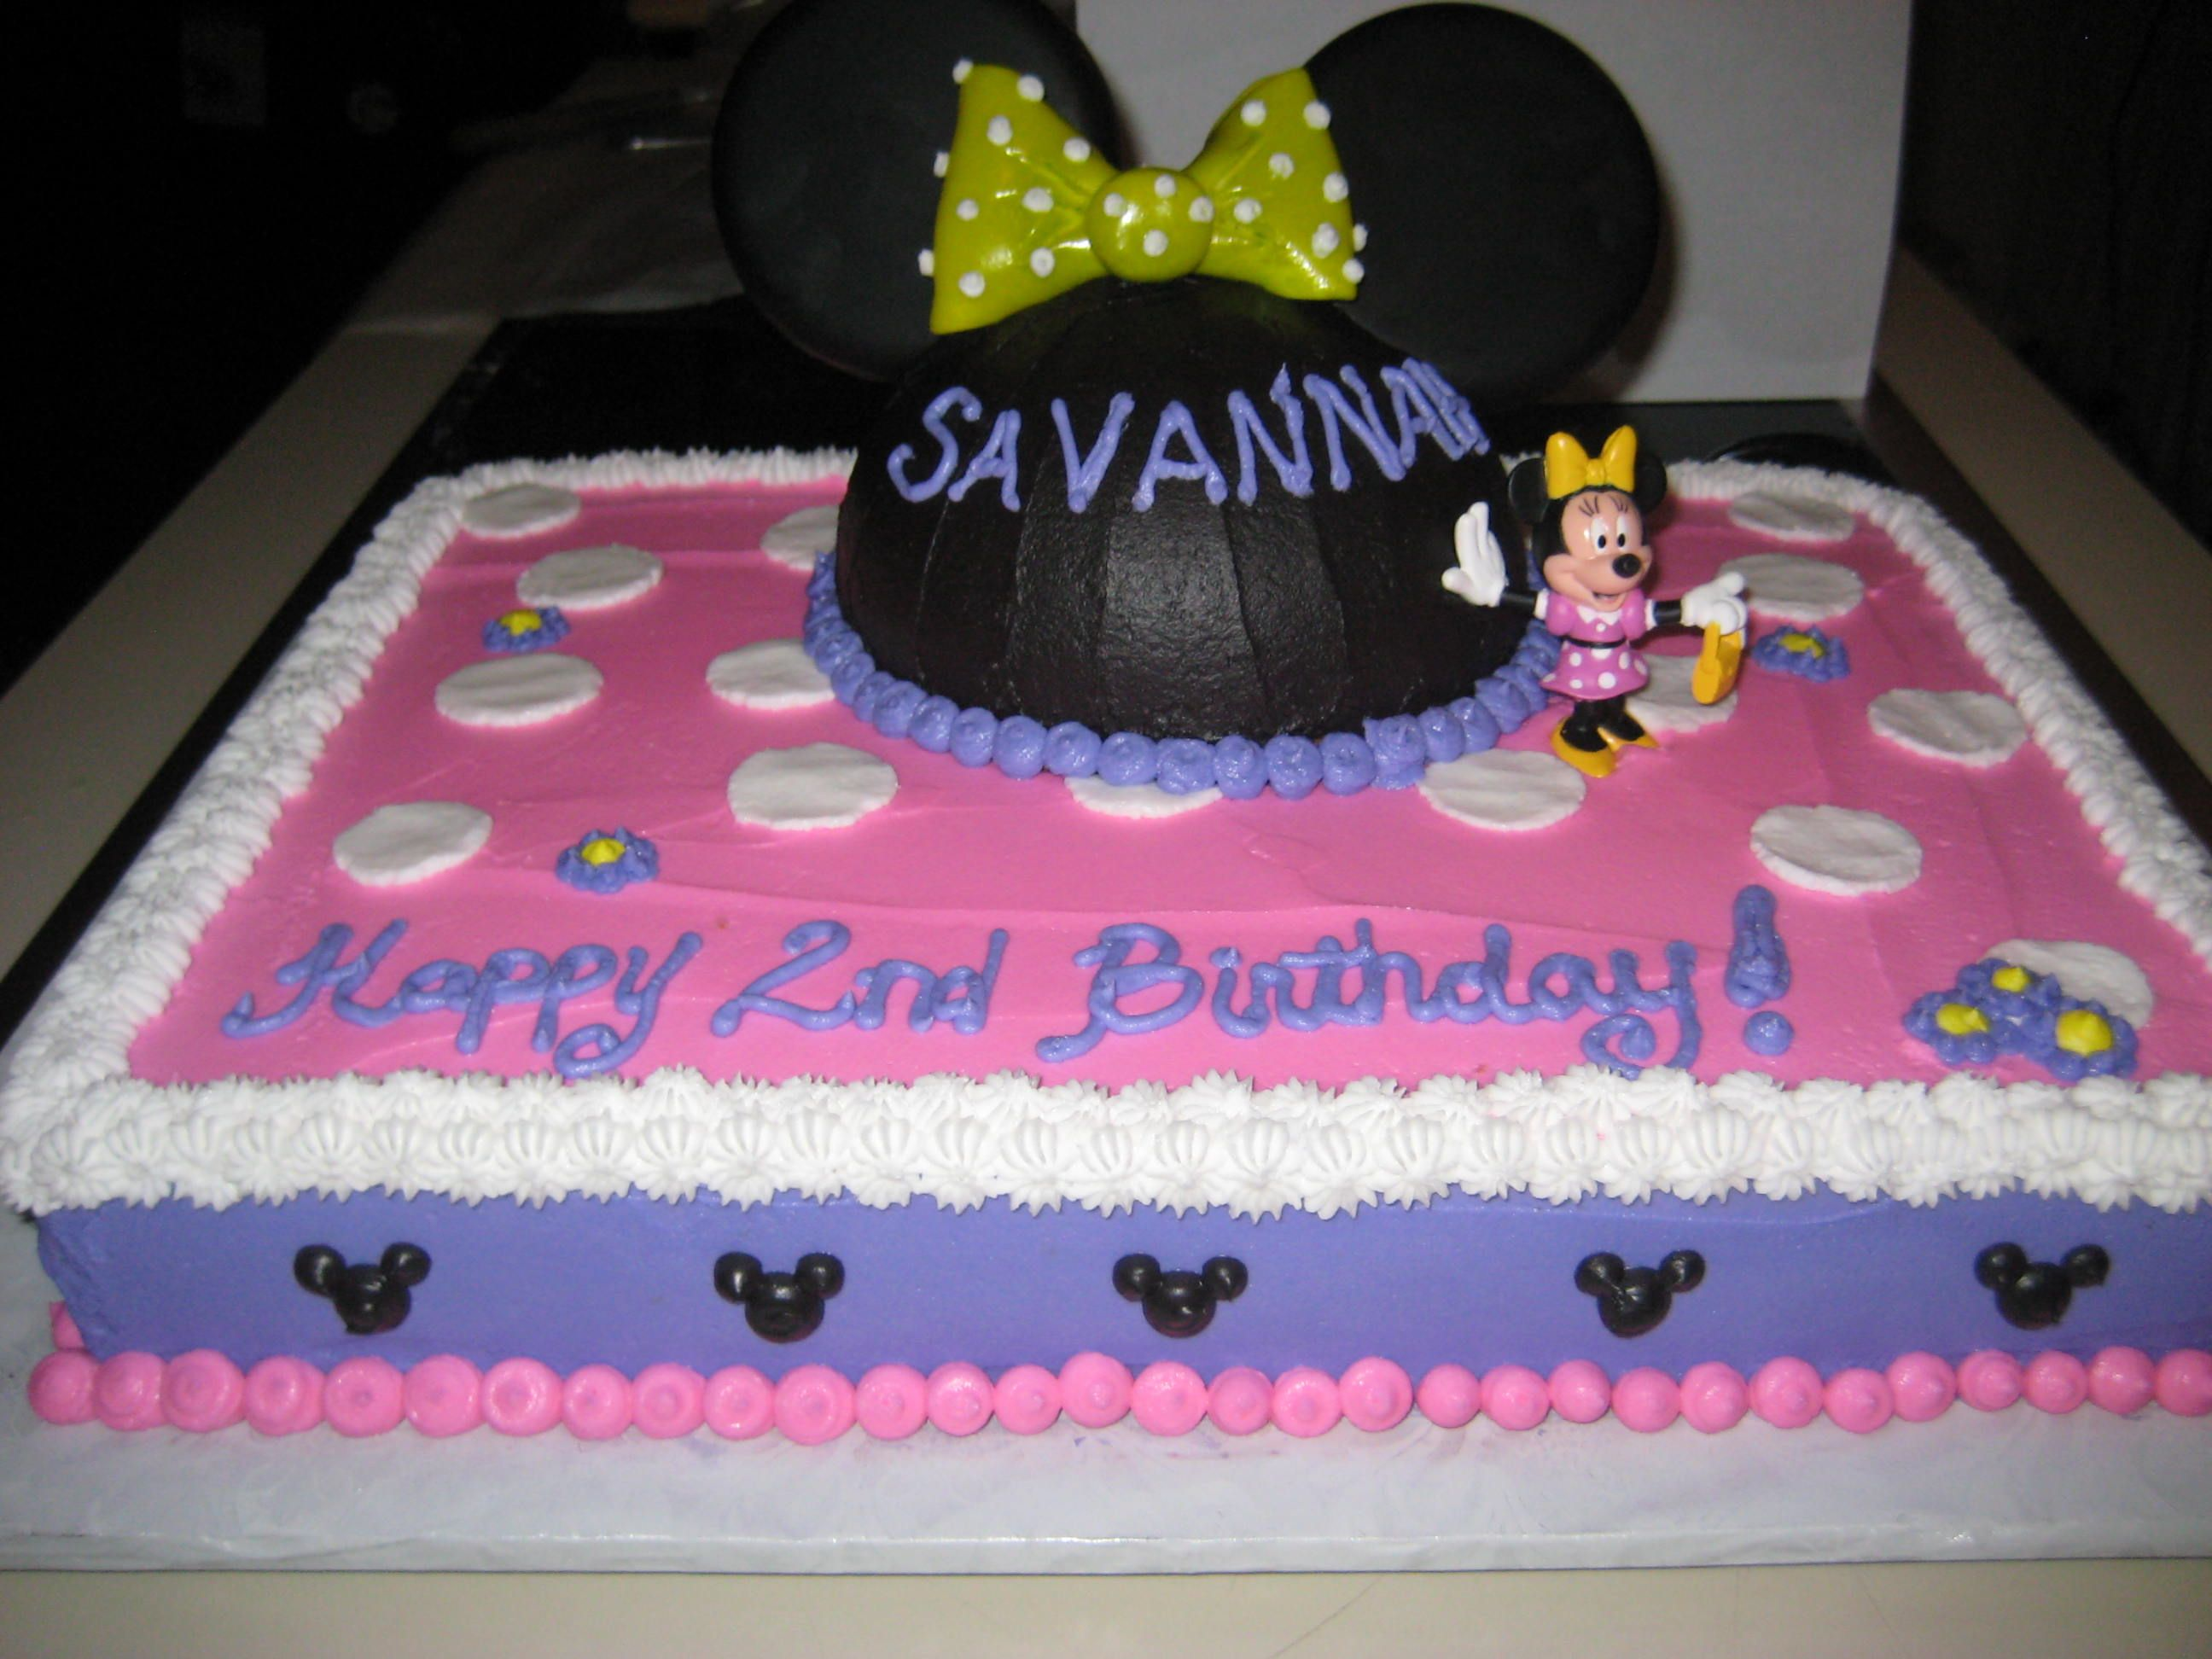 Minnie Mouse Sheet Cake All edible except Minnie figurine